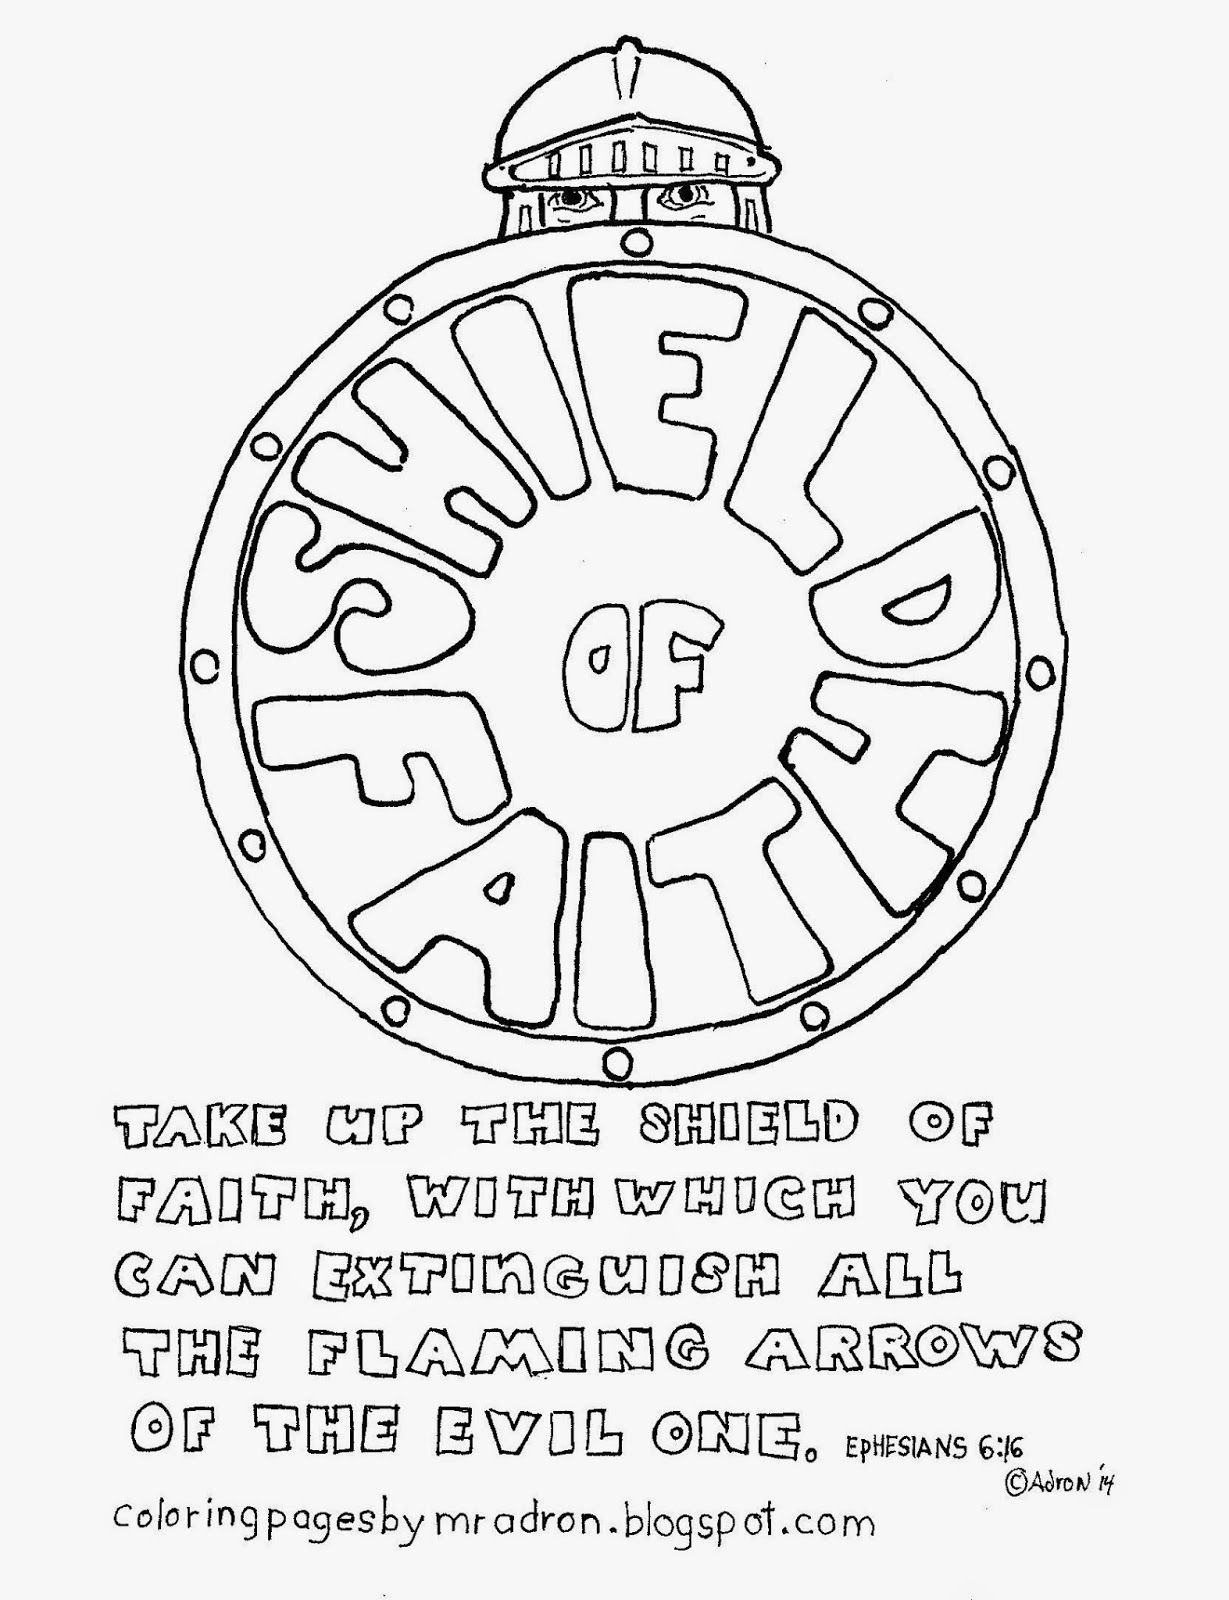 Coloring pages for preschoolers on salavation - Coloring Pages For Kids By Mr Adron The Shield Of Faith Free Coloring